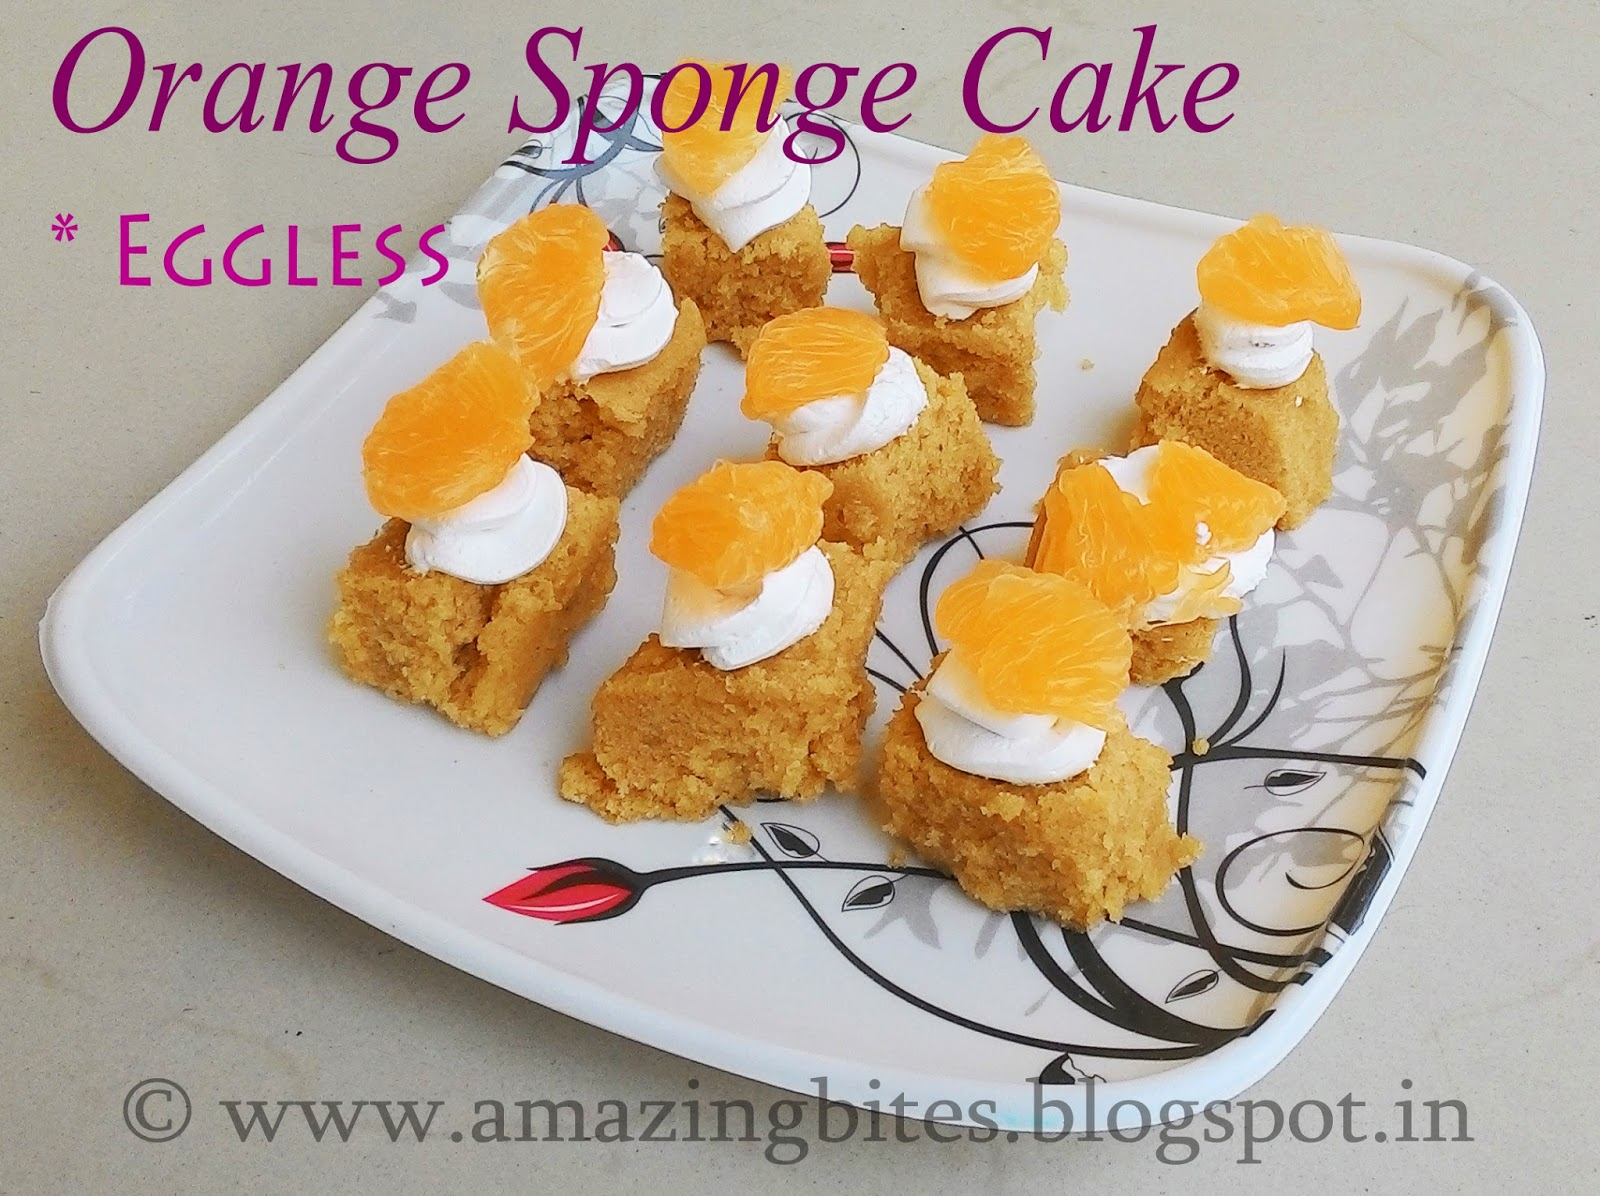 Orange Sponge Cake (Eggless)